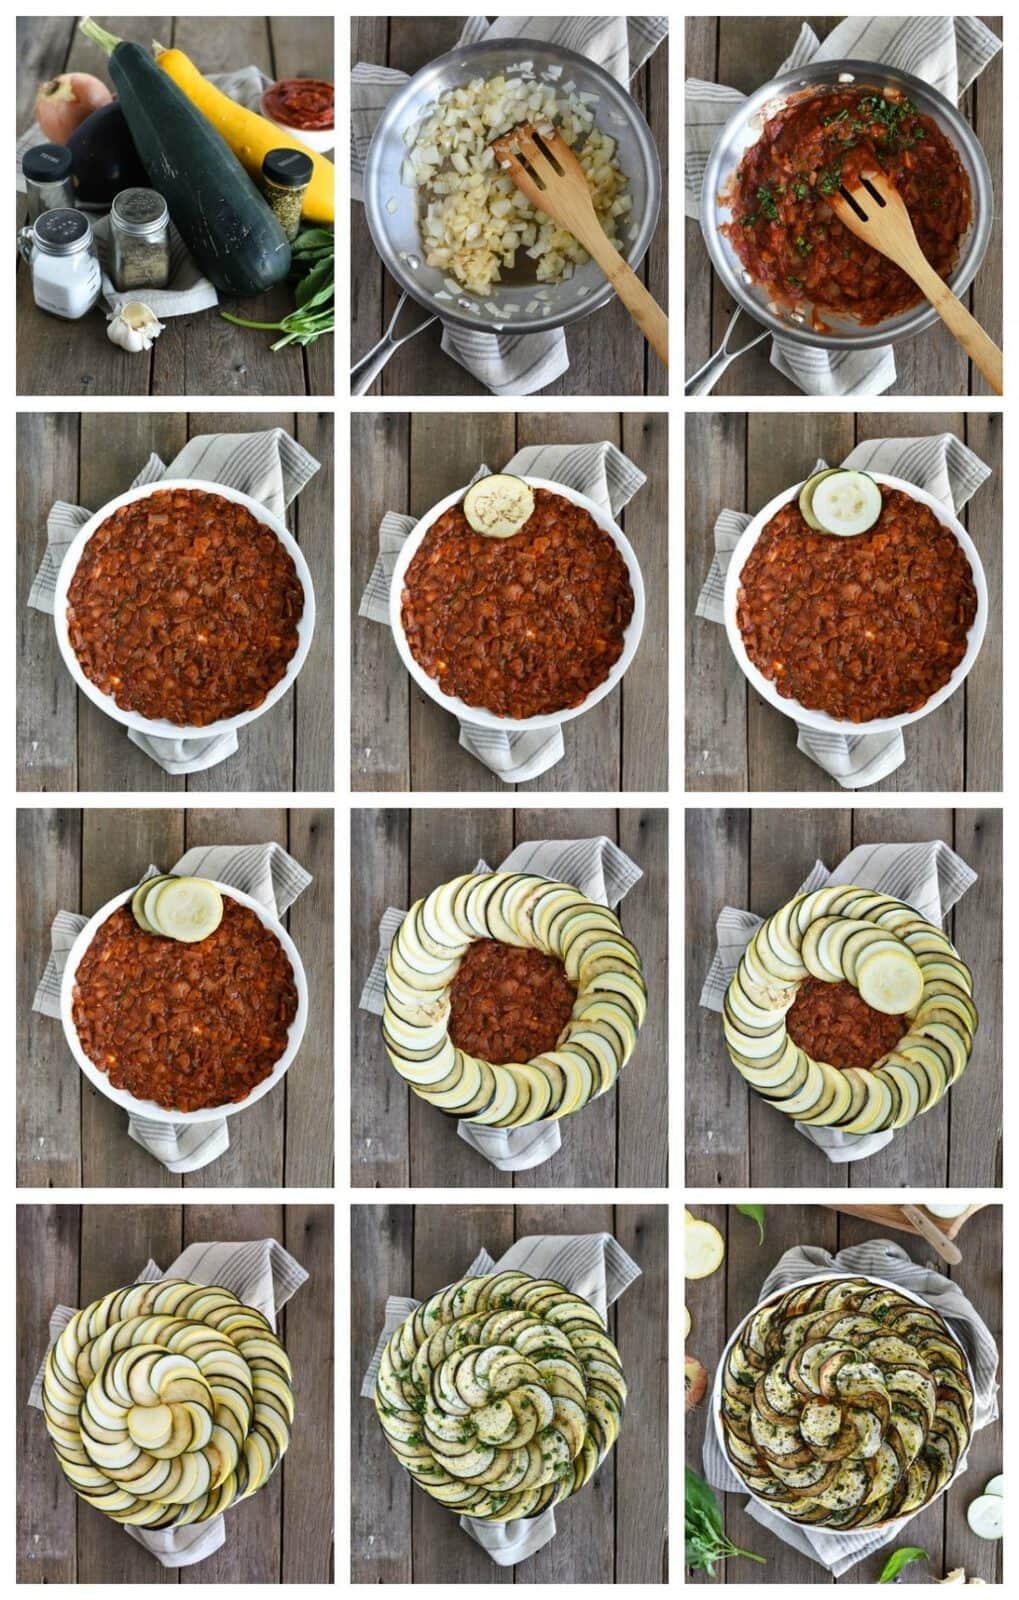 Baked ratatouille step by step assembly instructions